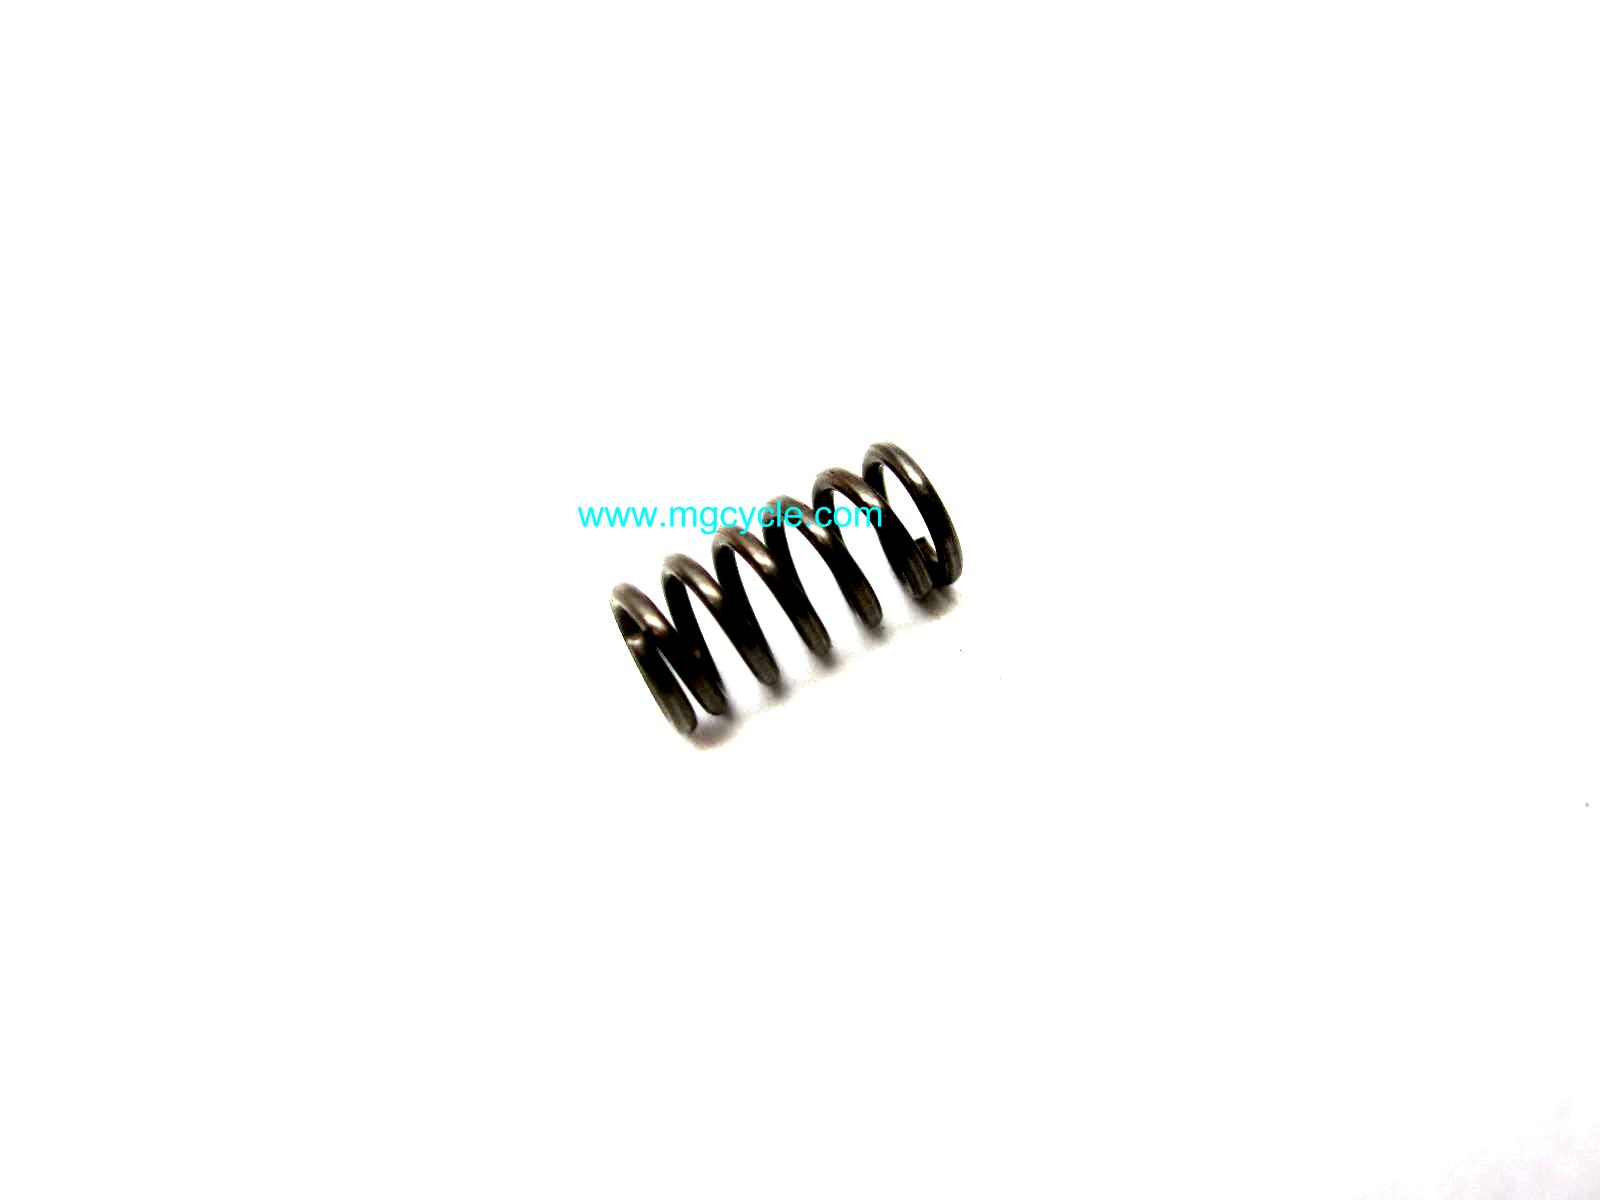 Dellorto 7446 mixture screw spring VHB PHF PHBH PHM VHBZ